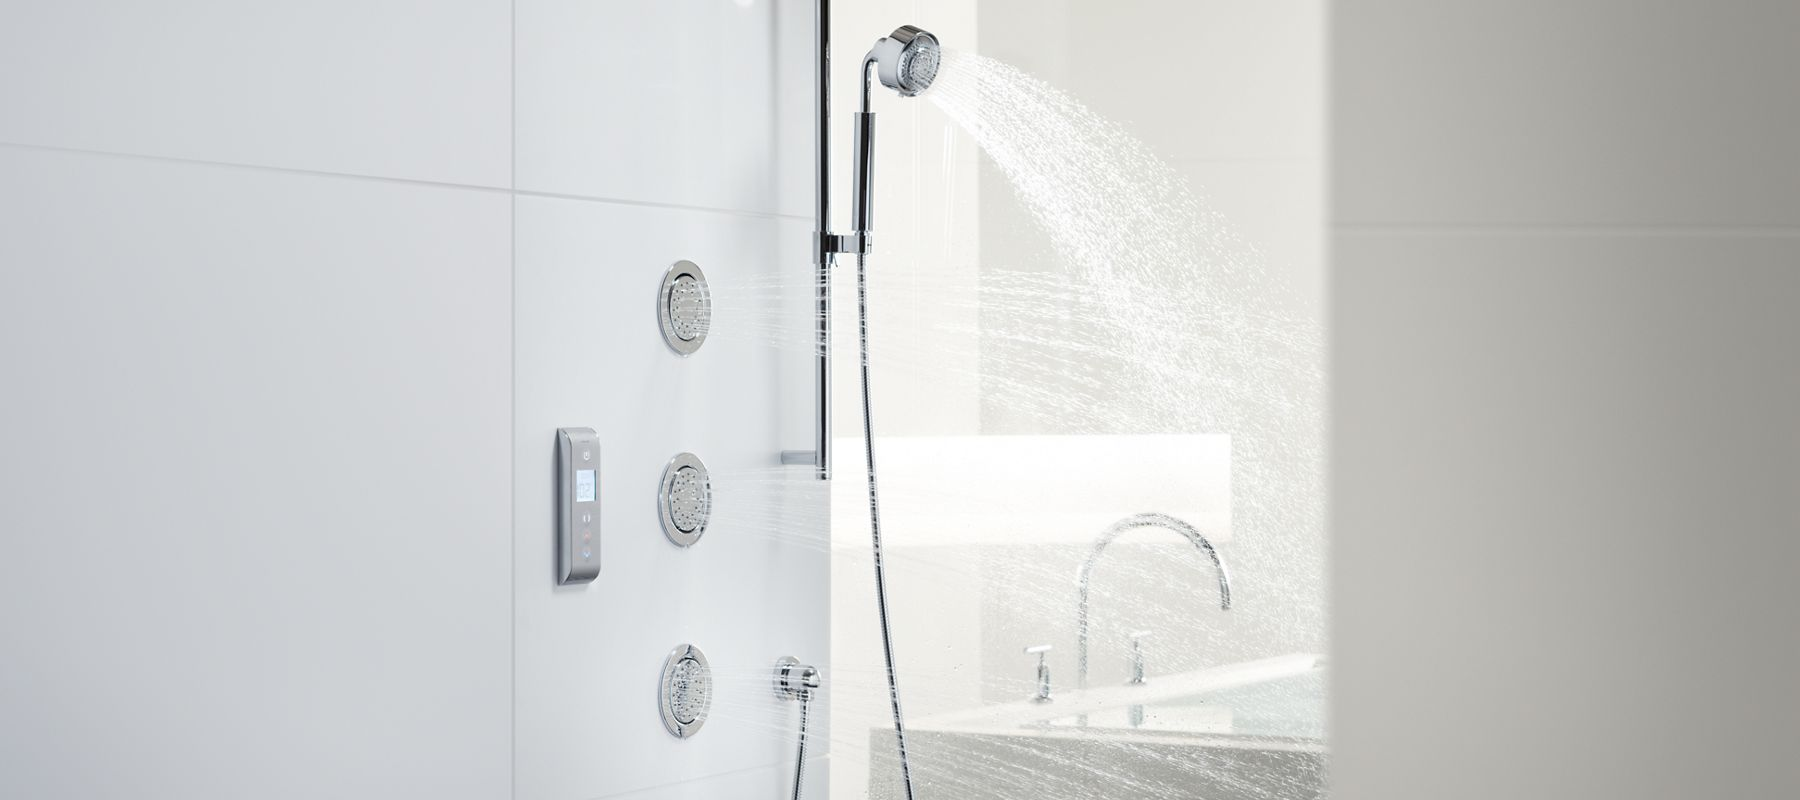 arin pin system jets shower with systems hand thermostatic bathroom